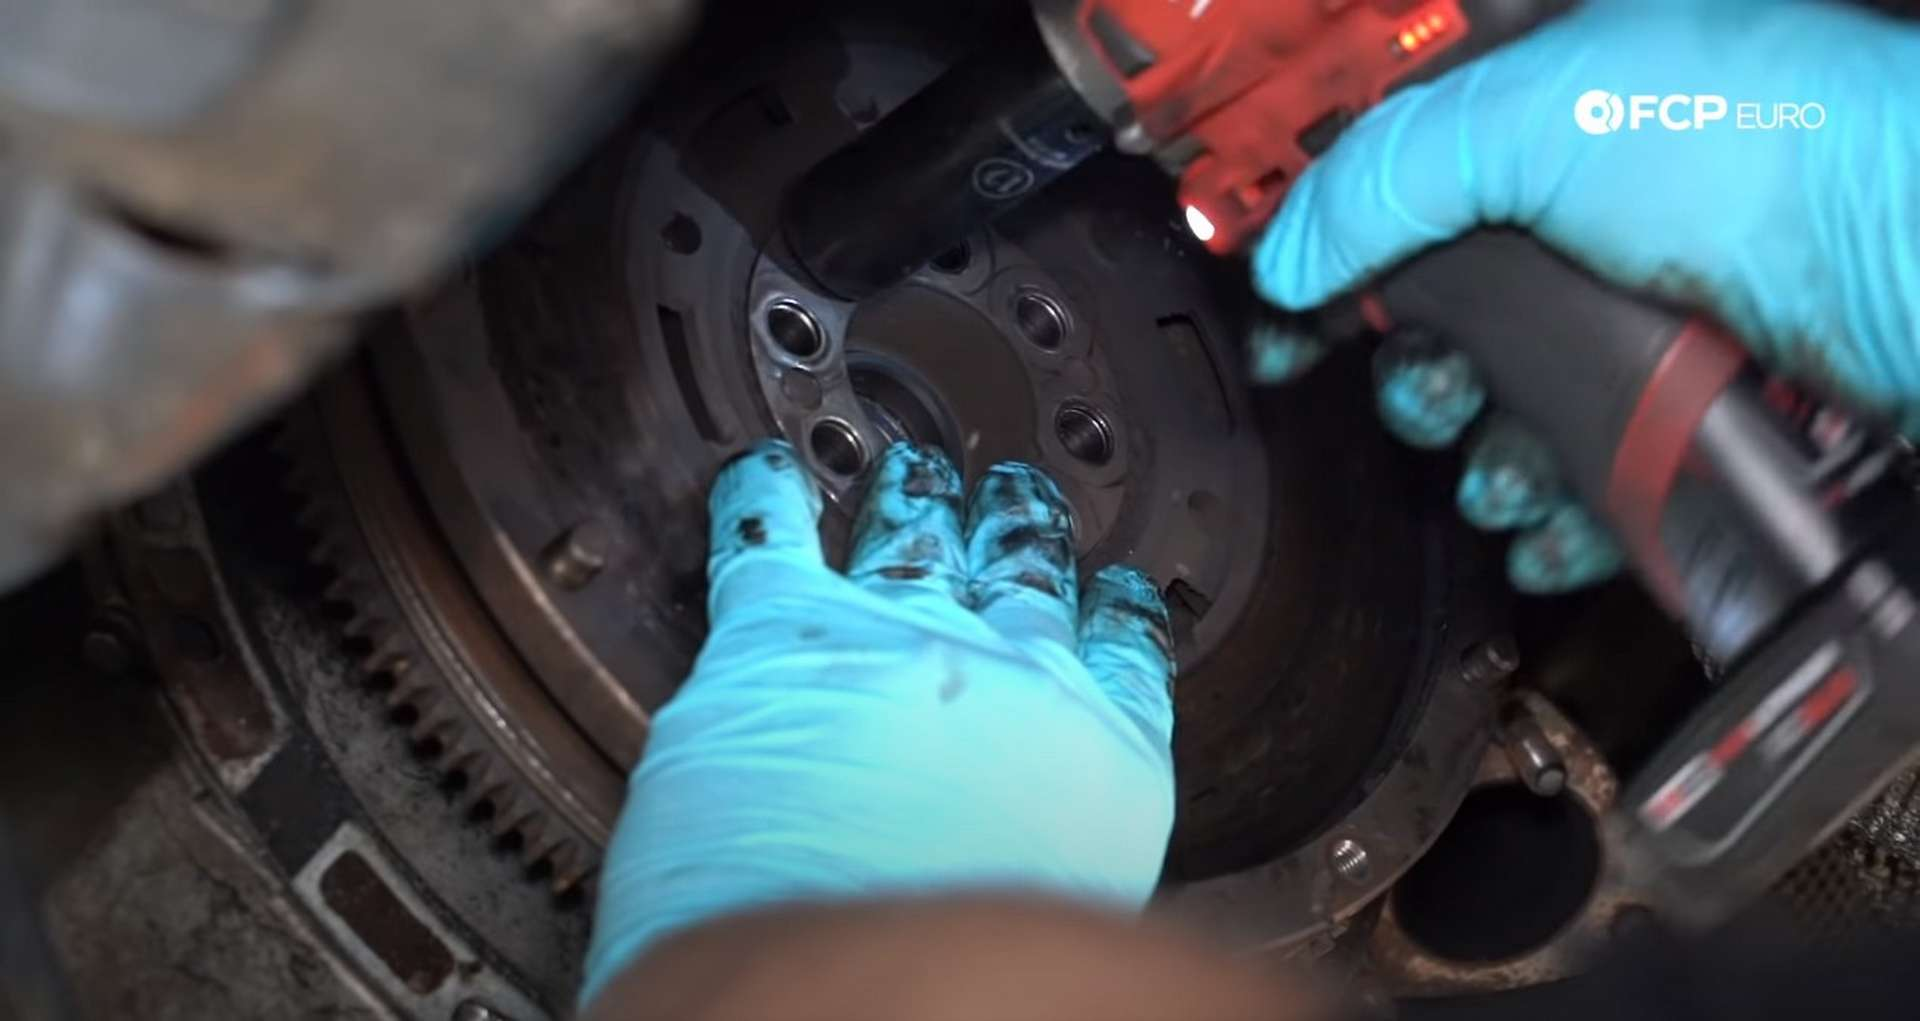 DIY BMW E46 Clutch Replacement removing the flywheel bolts